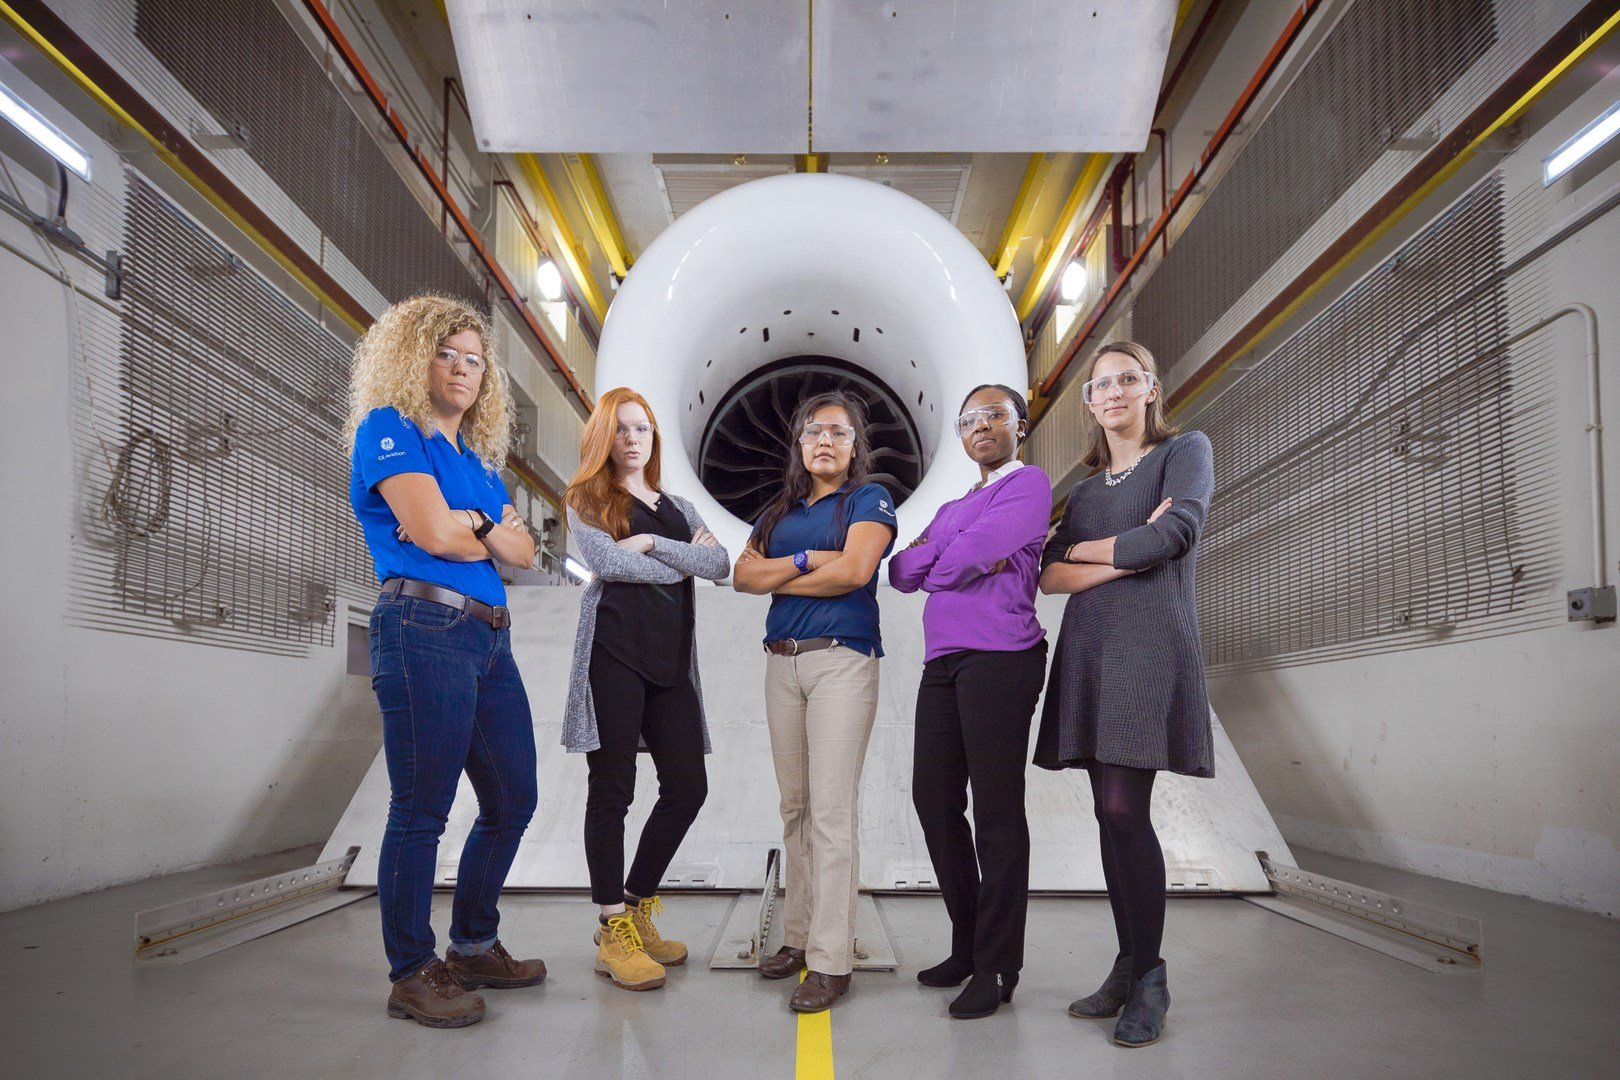 The campaign calls for increasing the number of women currently in STEM roles at GE from just under 15,000 to 20,000.